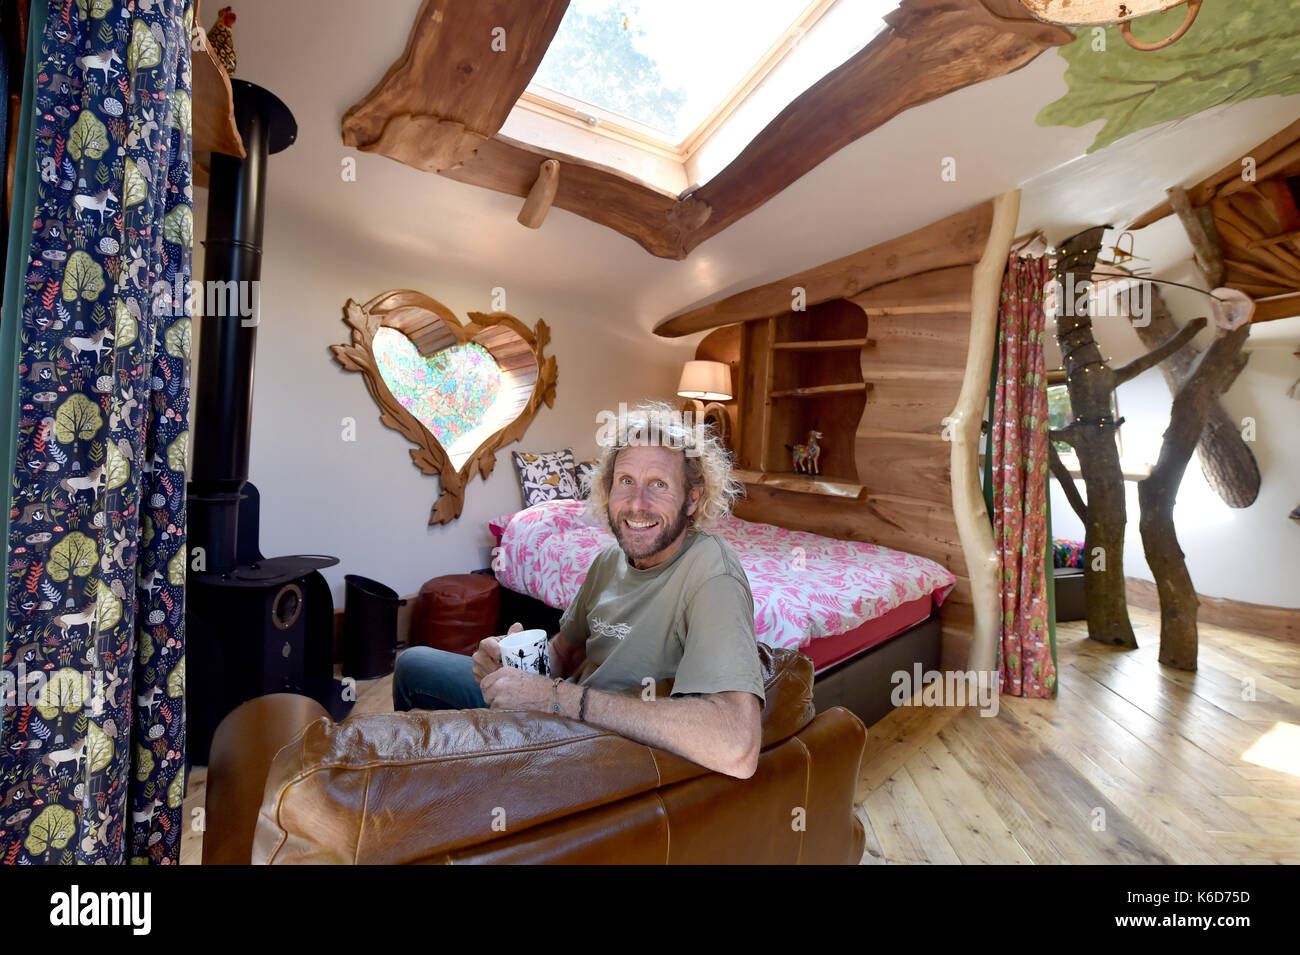 Ditchling Sussex, UK. 12th Sep, 2017. A new tree house has been unveiled at Blackberry Wood campsite near Ditchling in Sussex . The new upmarket tree house called Piggledy has been built by campsite owner Tim Johnson (pictured) and is larger than the original next door tree house called Higgledy . The quirky campsite is well known for having a London bus and an old Wessex helicopter where people can also stay in peaceful surroundings nestled just north of the South Downs National Park Credit: Simon Dack/Alamy Live News - Stock Image